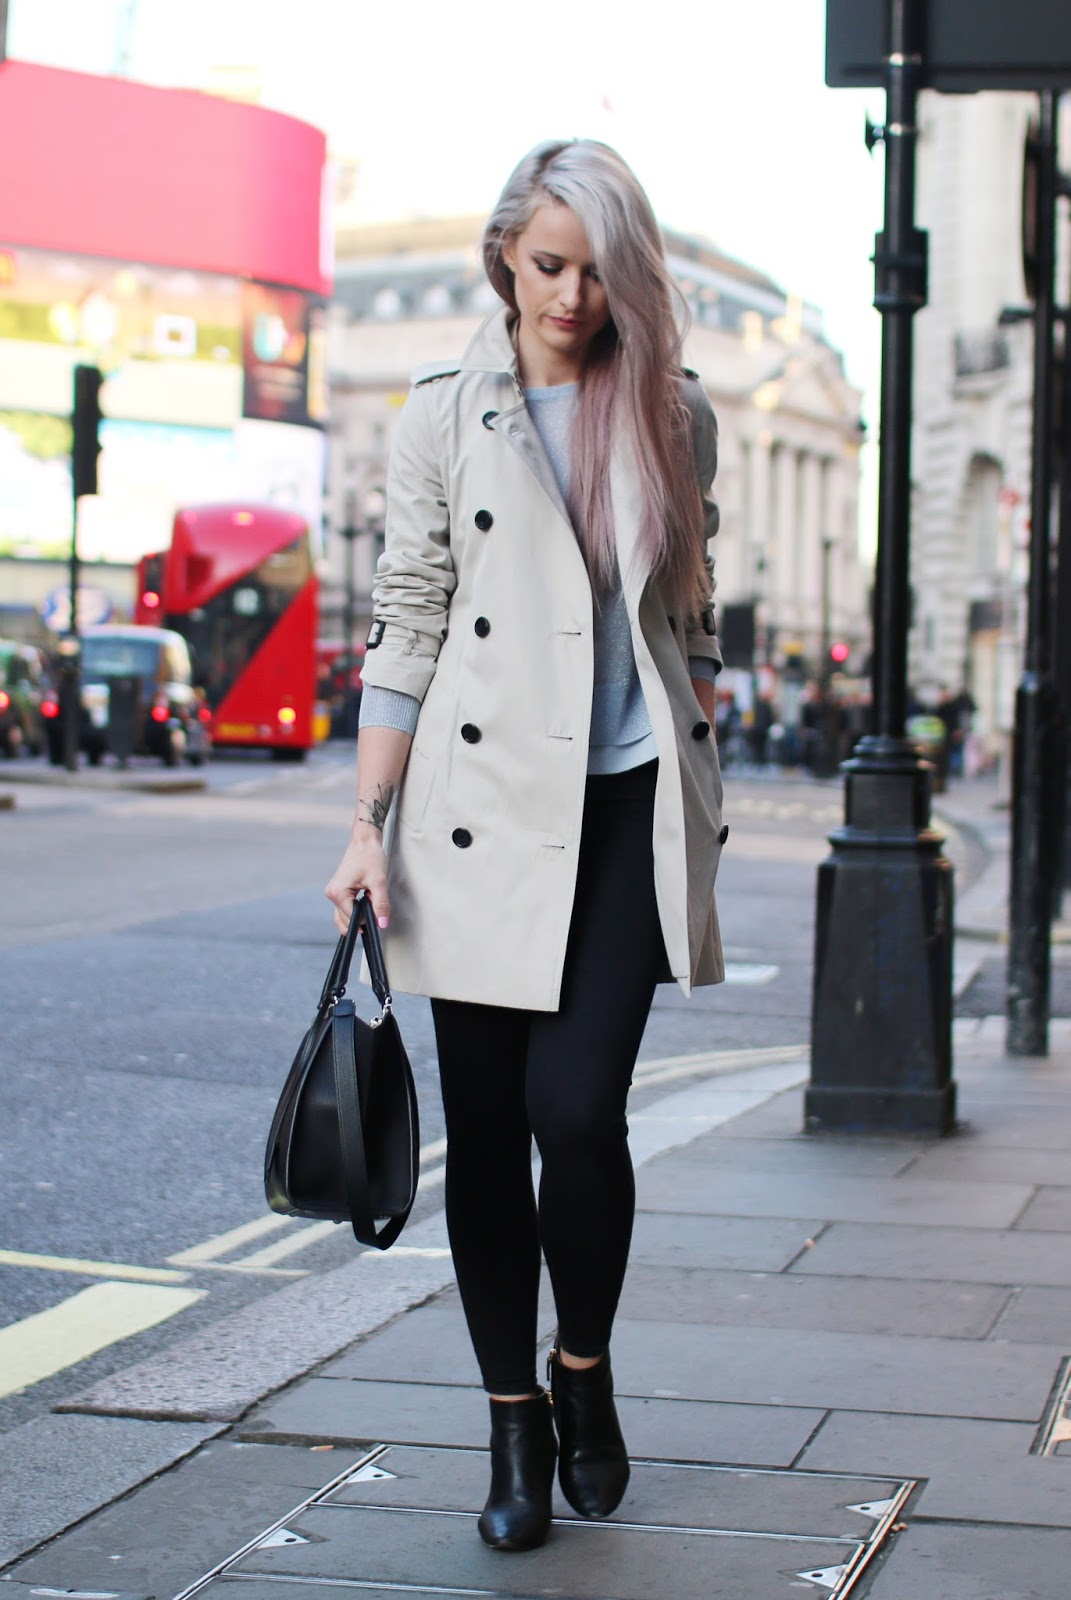 Burberry Trench / Chloe Boots / Whistles Knit / Topshop Jeans / Fendi Tote